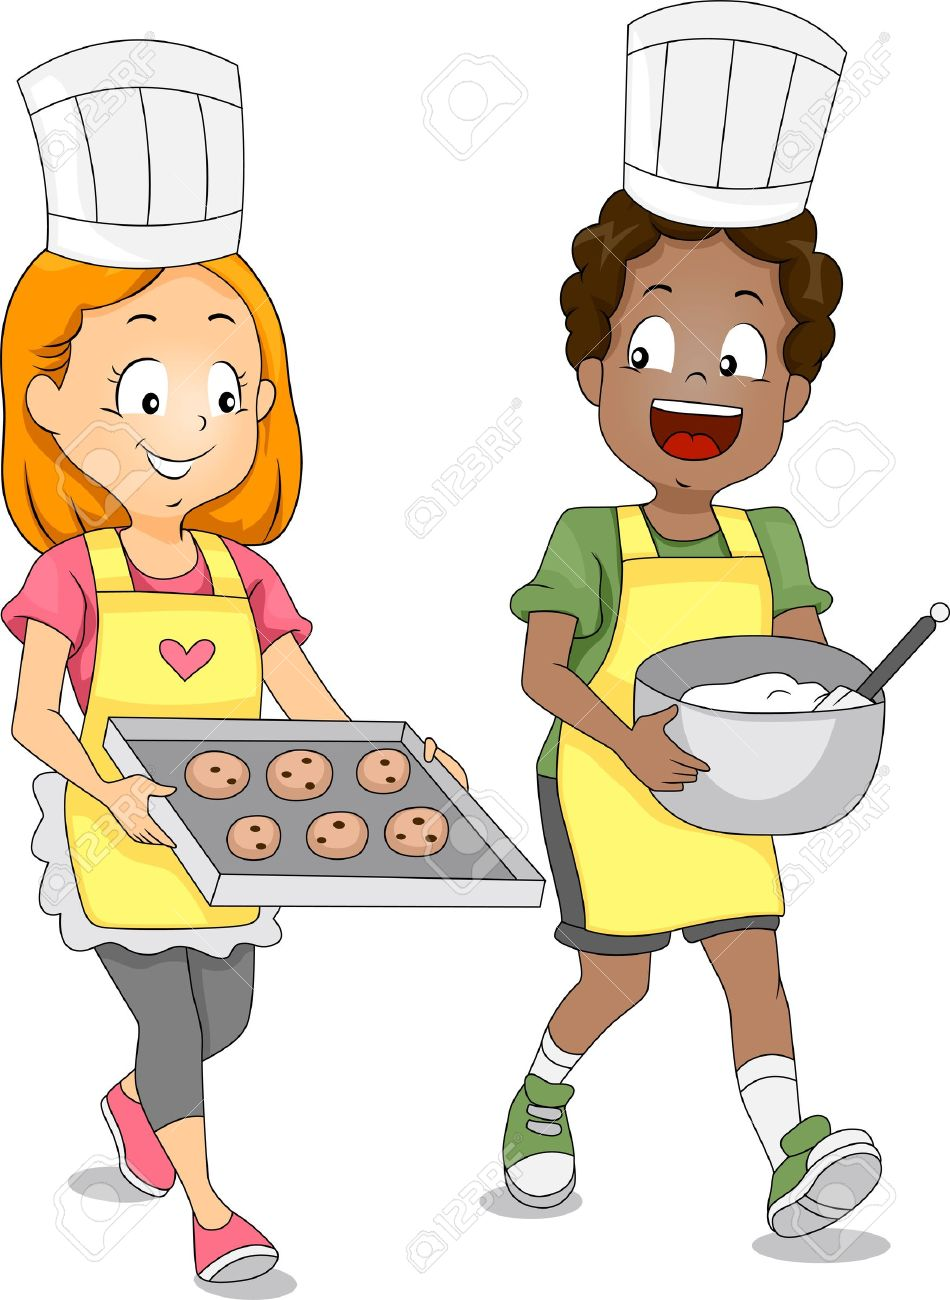 cooking cartoon illustration of kids baking cookies stock photo - Cartoon Kid Images